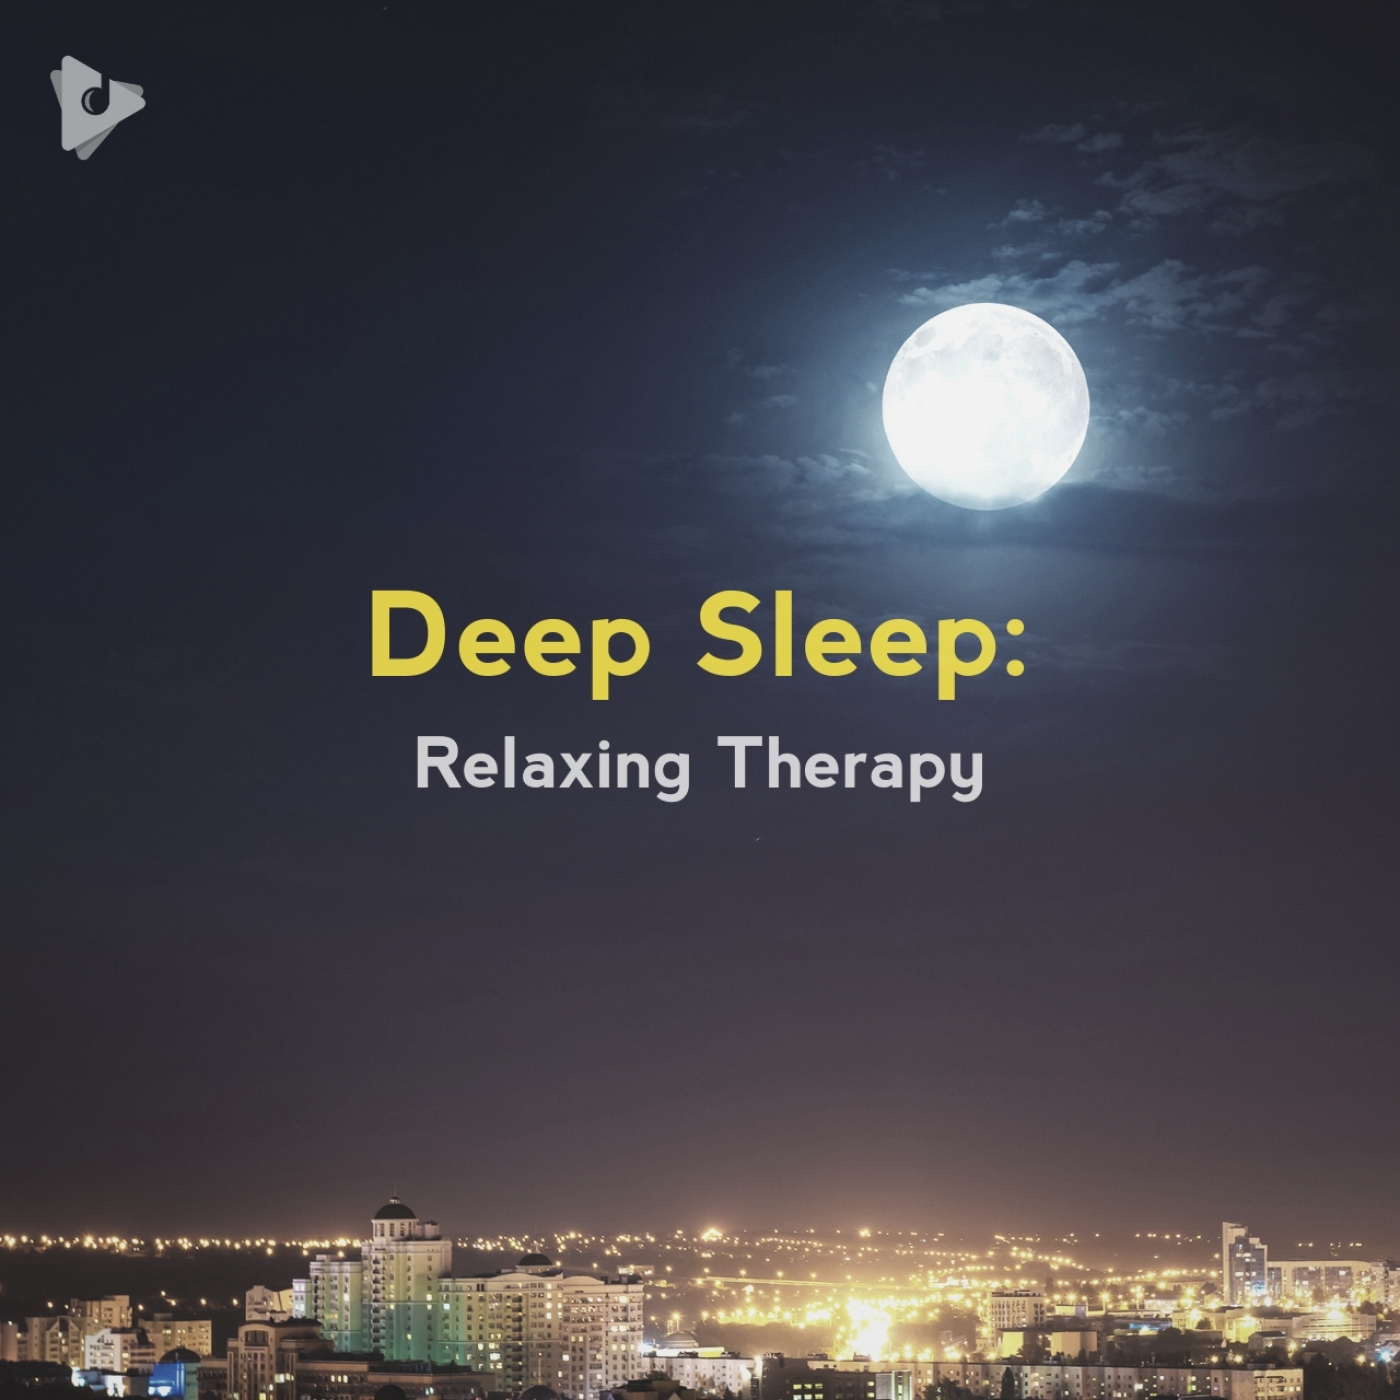 Deep Sleep: Relaxing Therapy